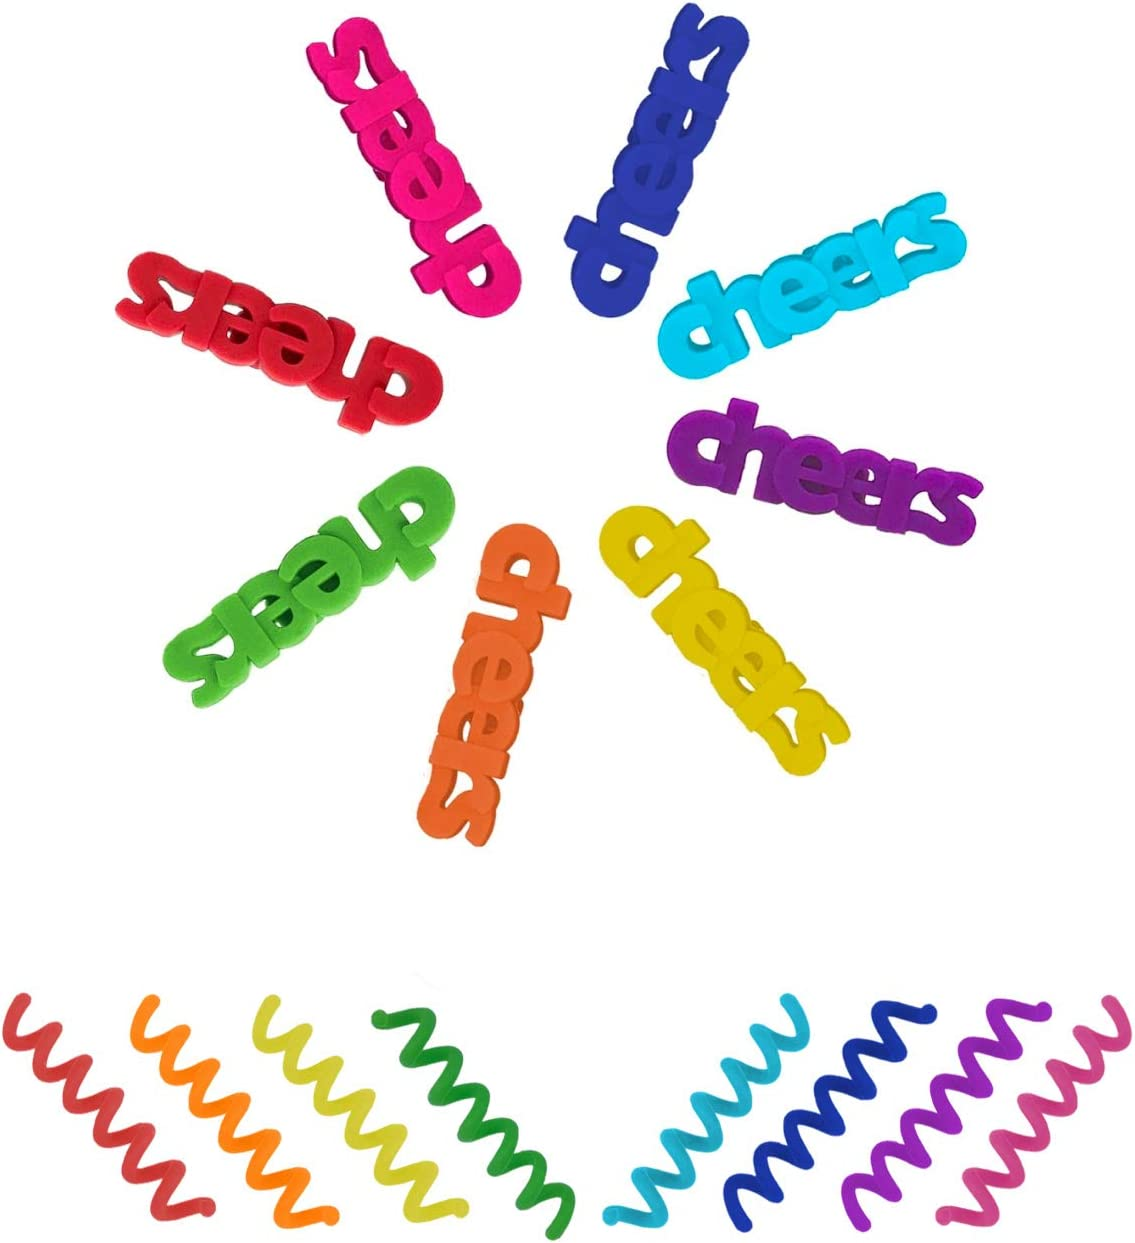 Silicone Wine Finally popular brand Dealing full price reduction Glass Charms - Bundle Identifiers and of Swirl 8